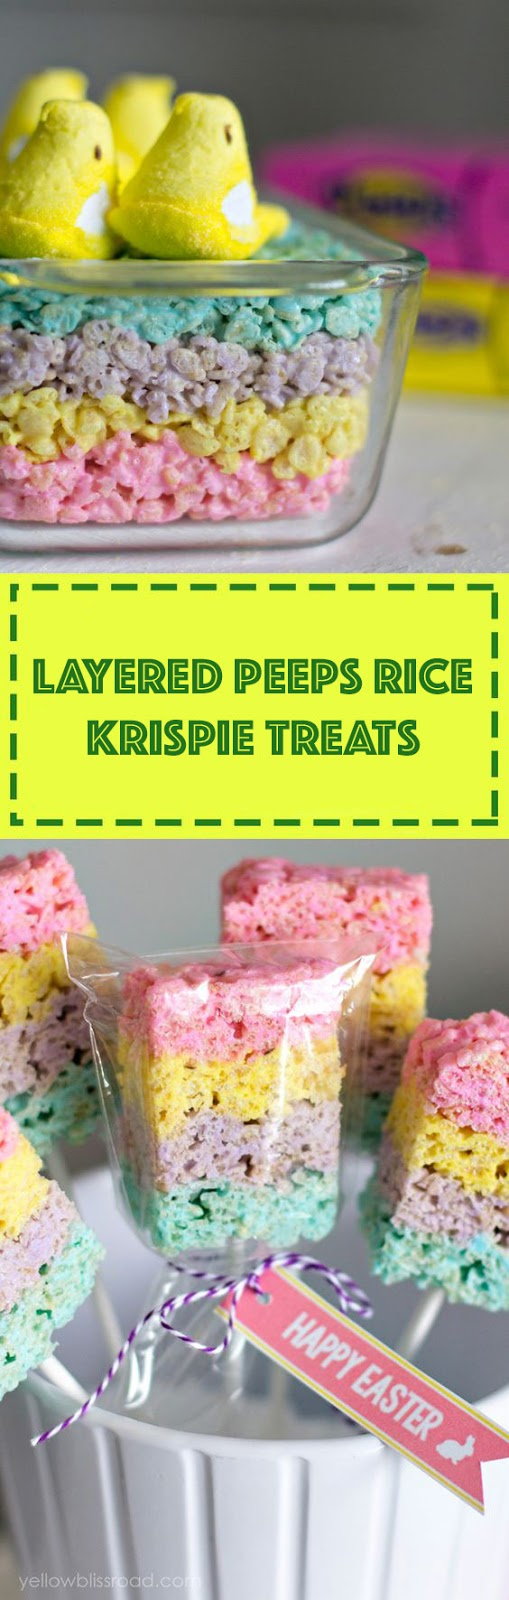 Layered Peeps Rice Krispie Treats